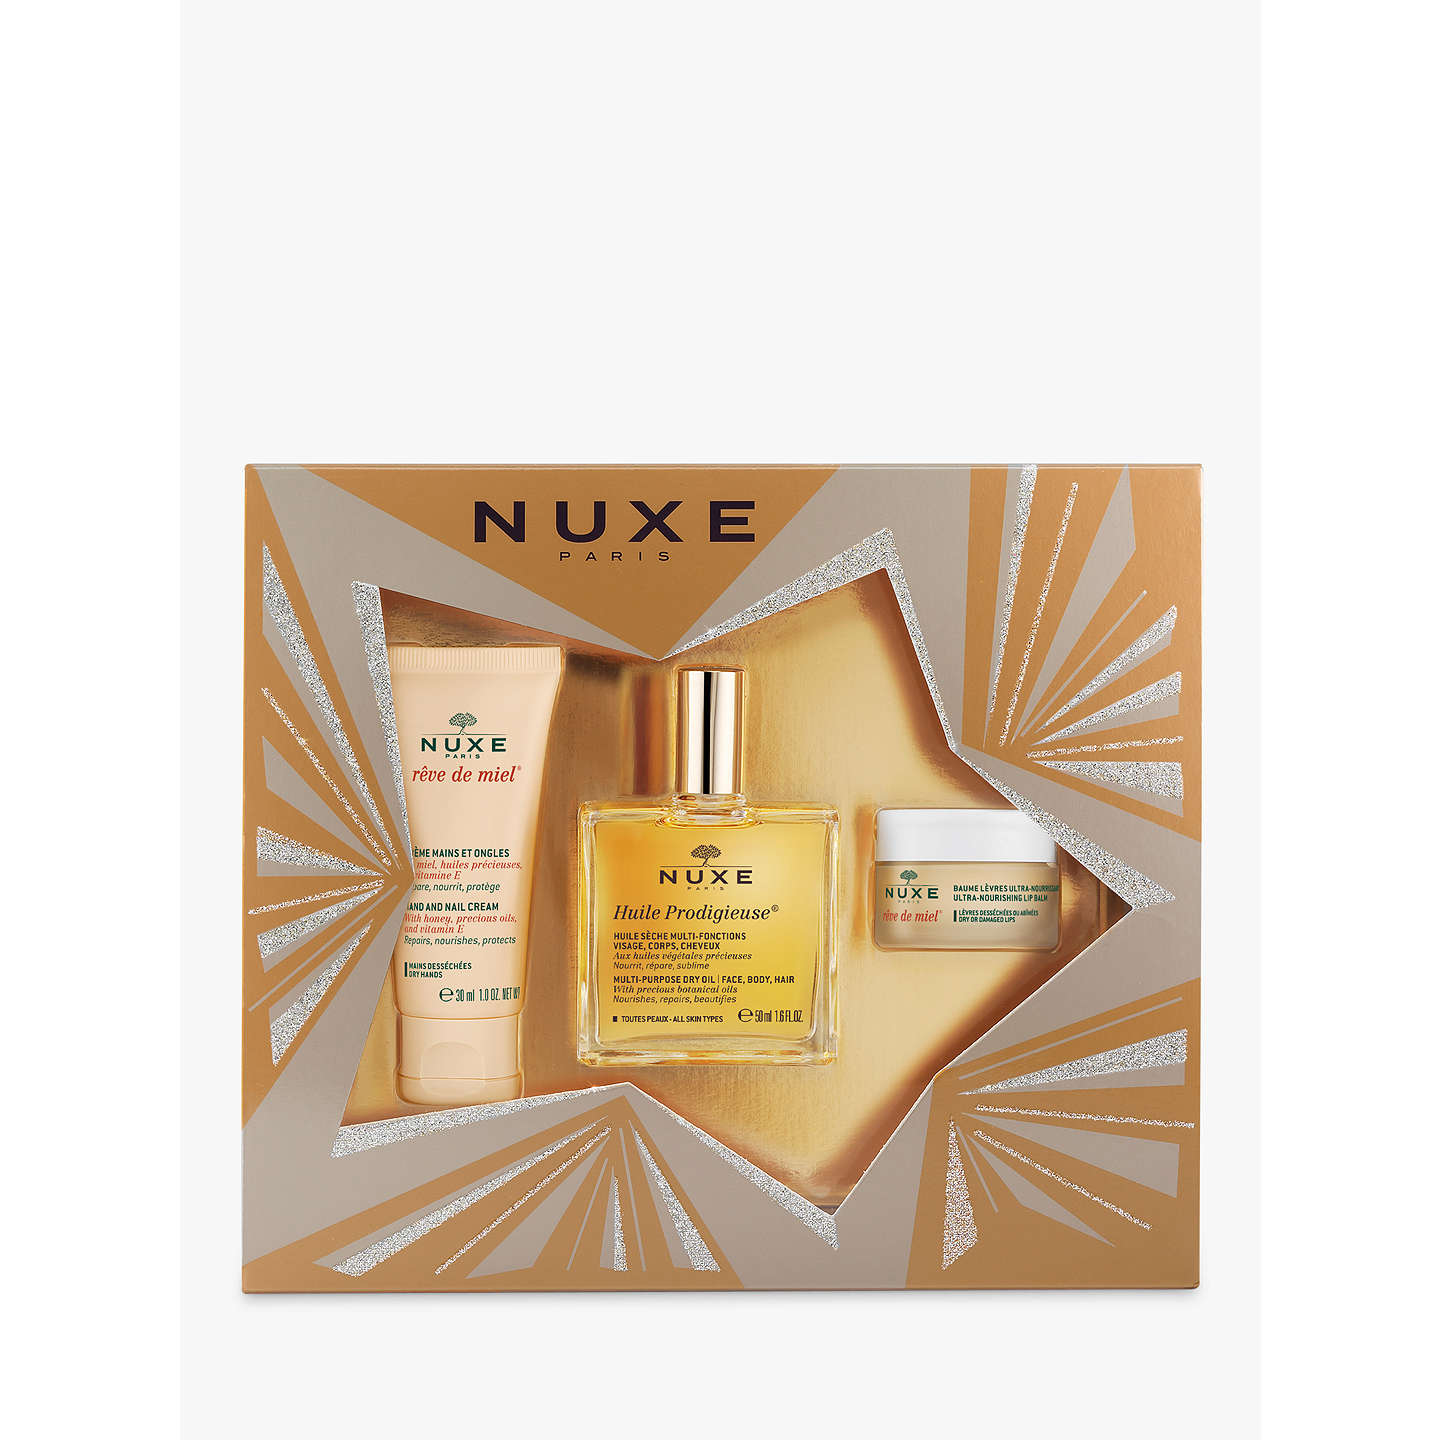 Nuxe Bestseller Gift Set by Nuxe